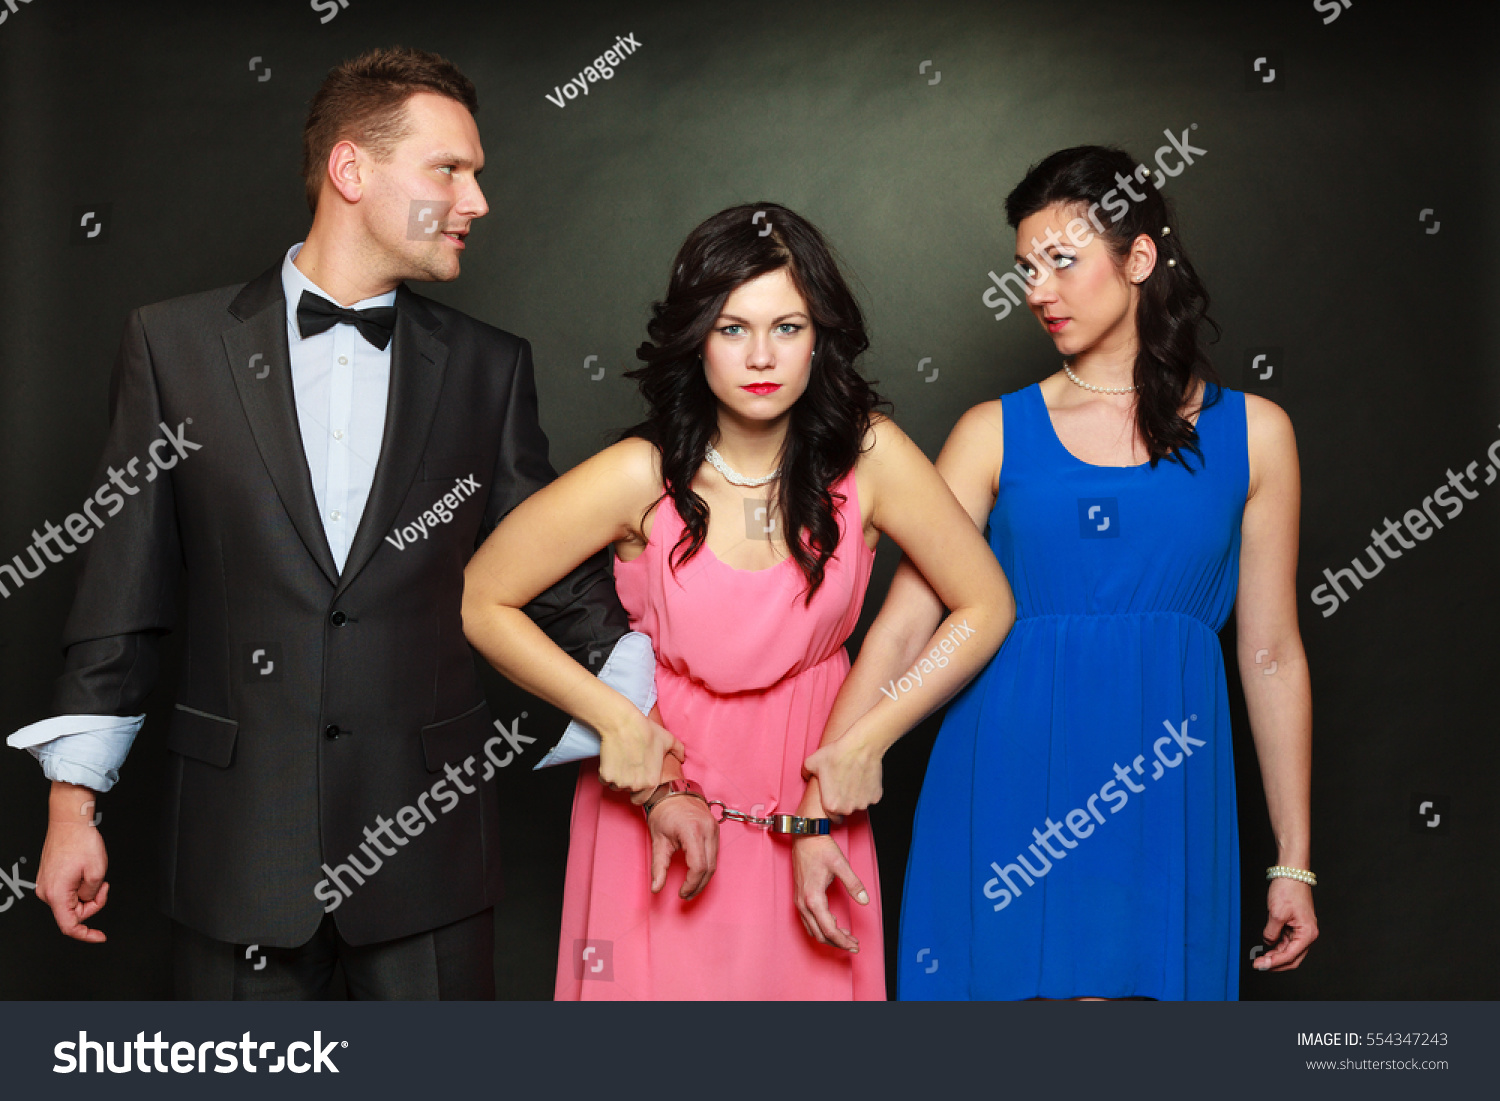 Couple Cheating Problems Love Triangle Concept Stock Photo -8355